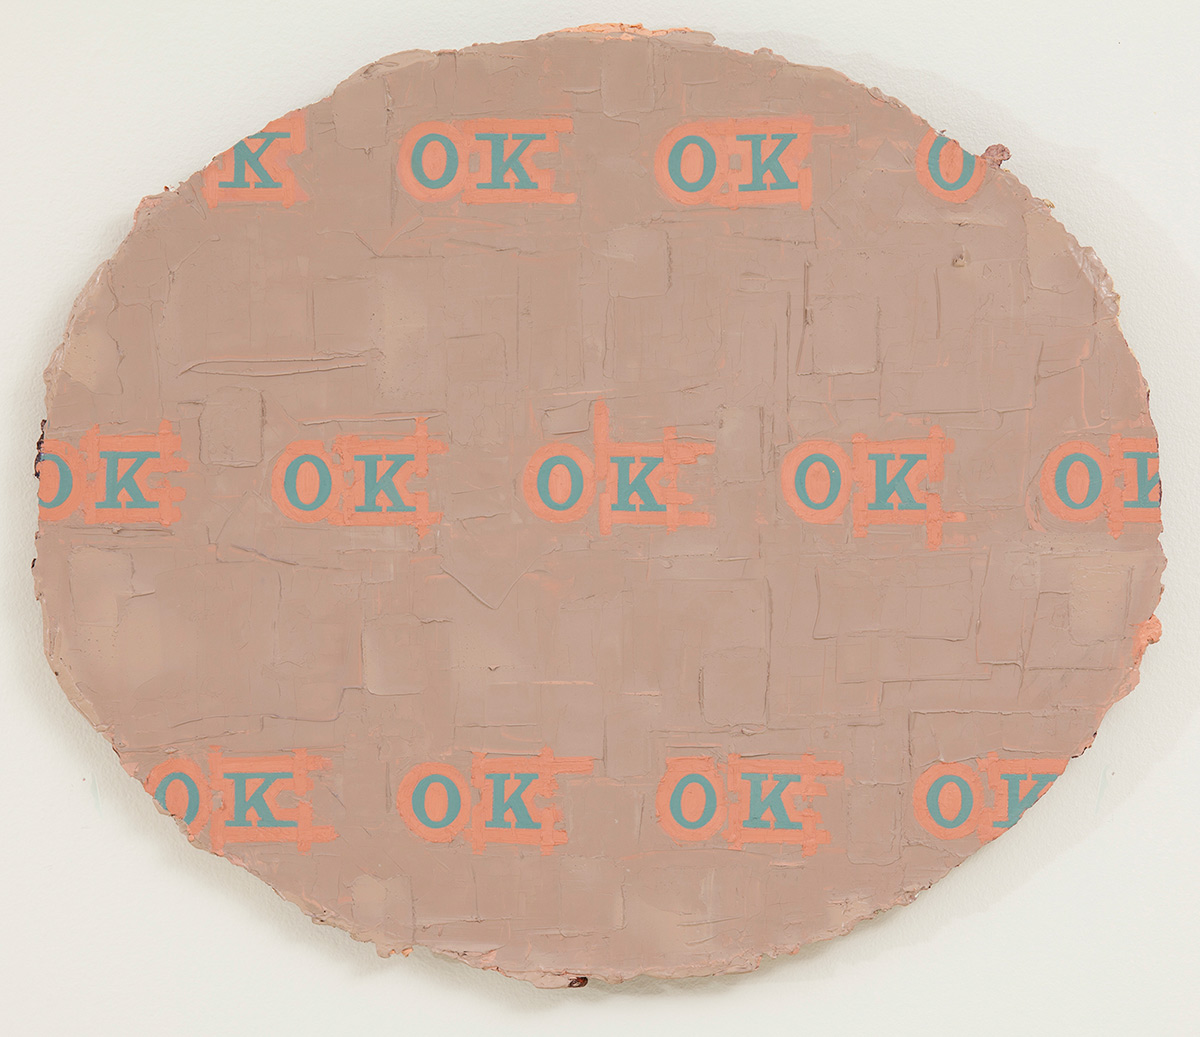 """Thickly textured paint covers the surface and oozes over the edges of this oval-shaped painting. The background is a muted dusty rose. The word """"OK"""" is repeated across the surface in three horizontal rows. The letters are rendered in turquoise and roughly outlined in coral."""